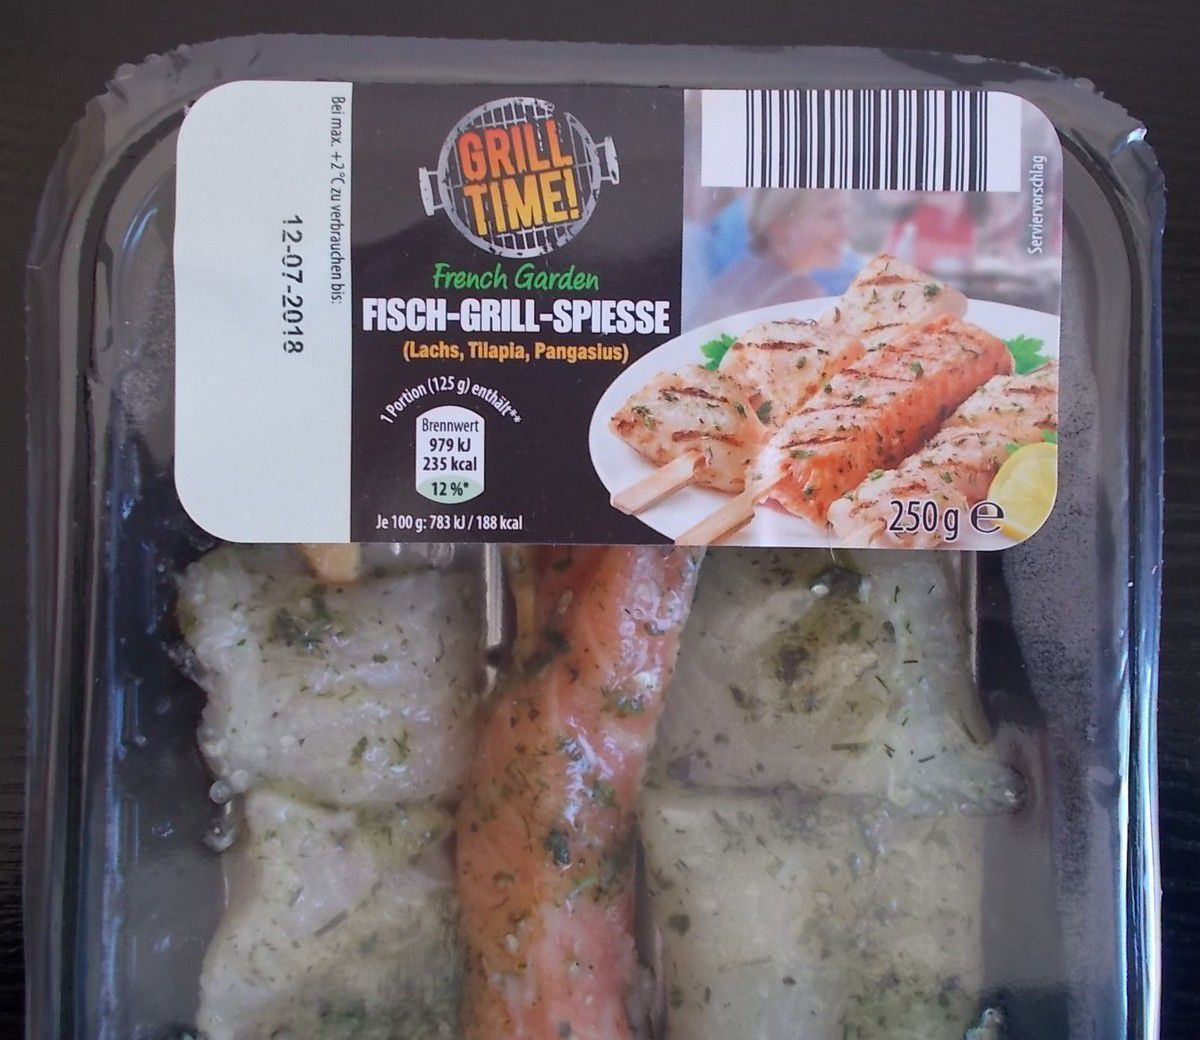 [Aldi Nord] Grill Time French Garden FISCH-GRILL-SPIESSE